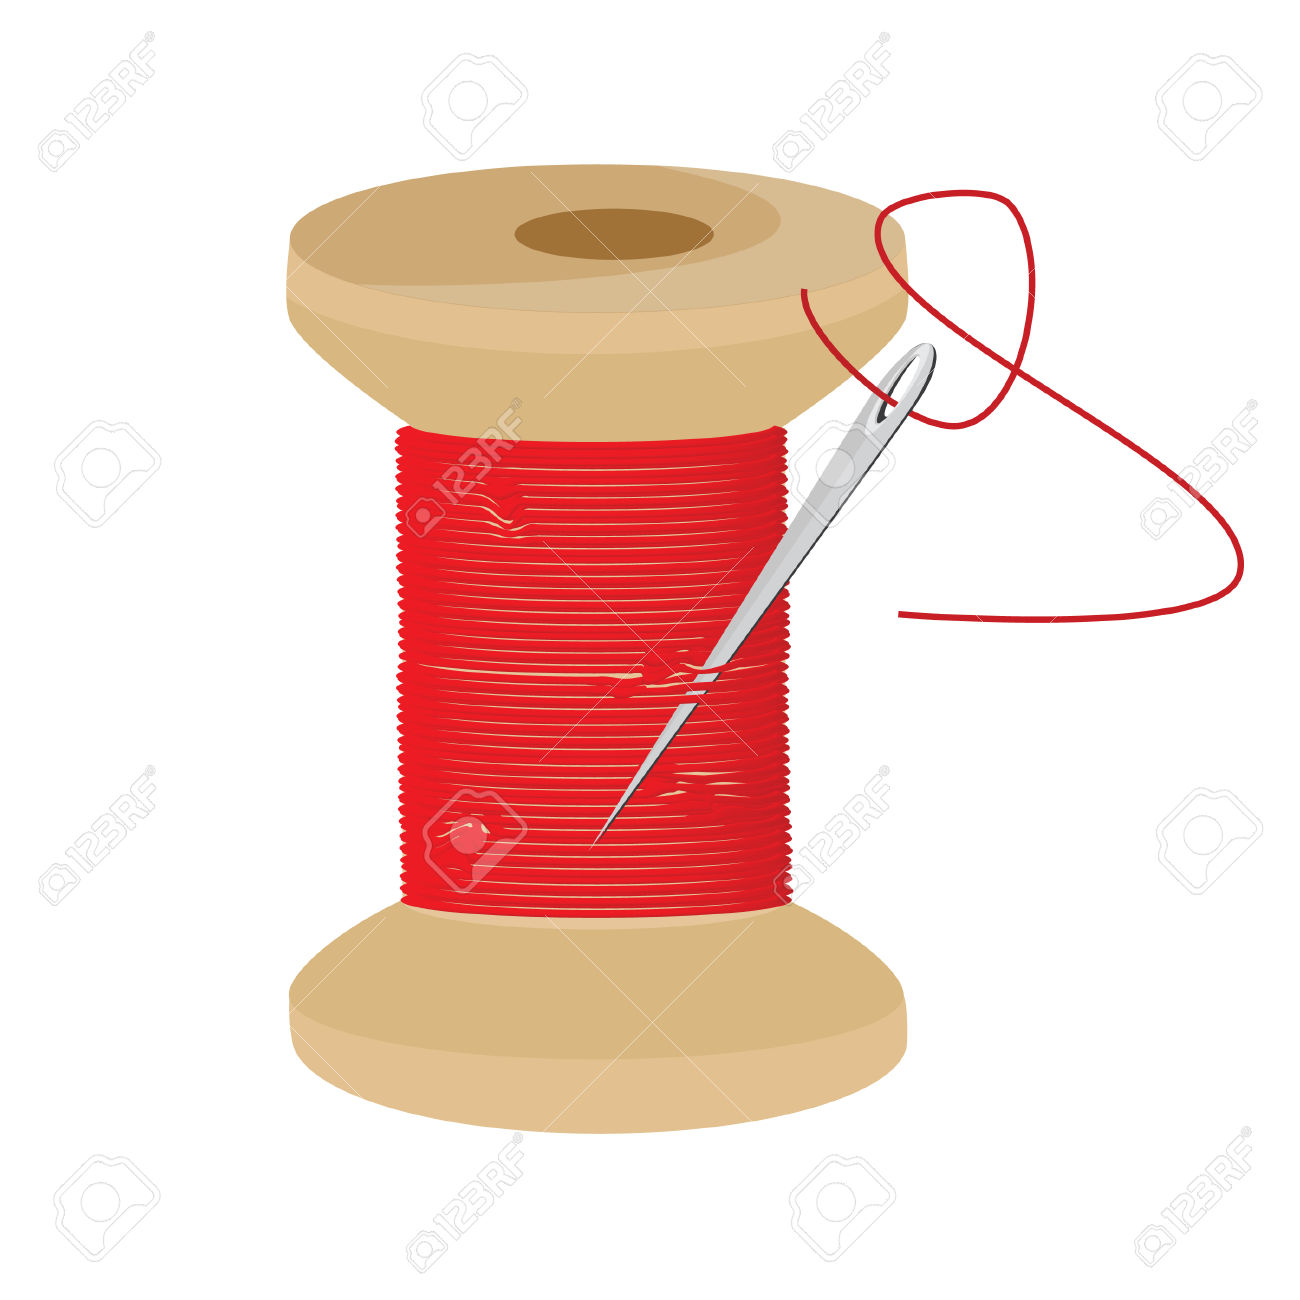 Red Thread Wooden Spool And Needle With Thread Raster Icon, Thread.